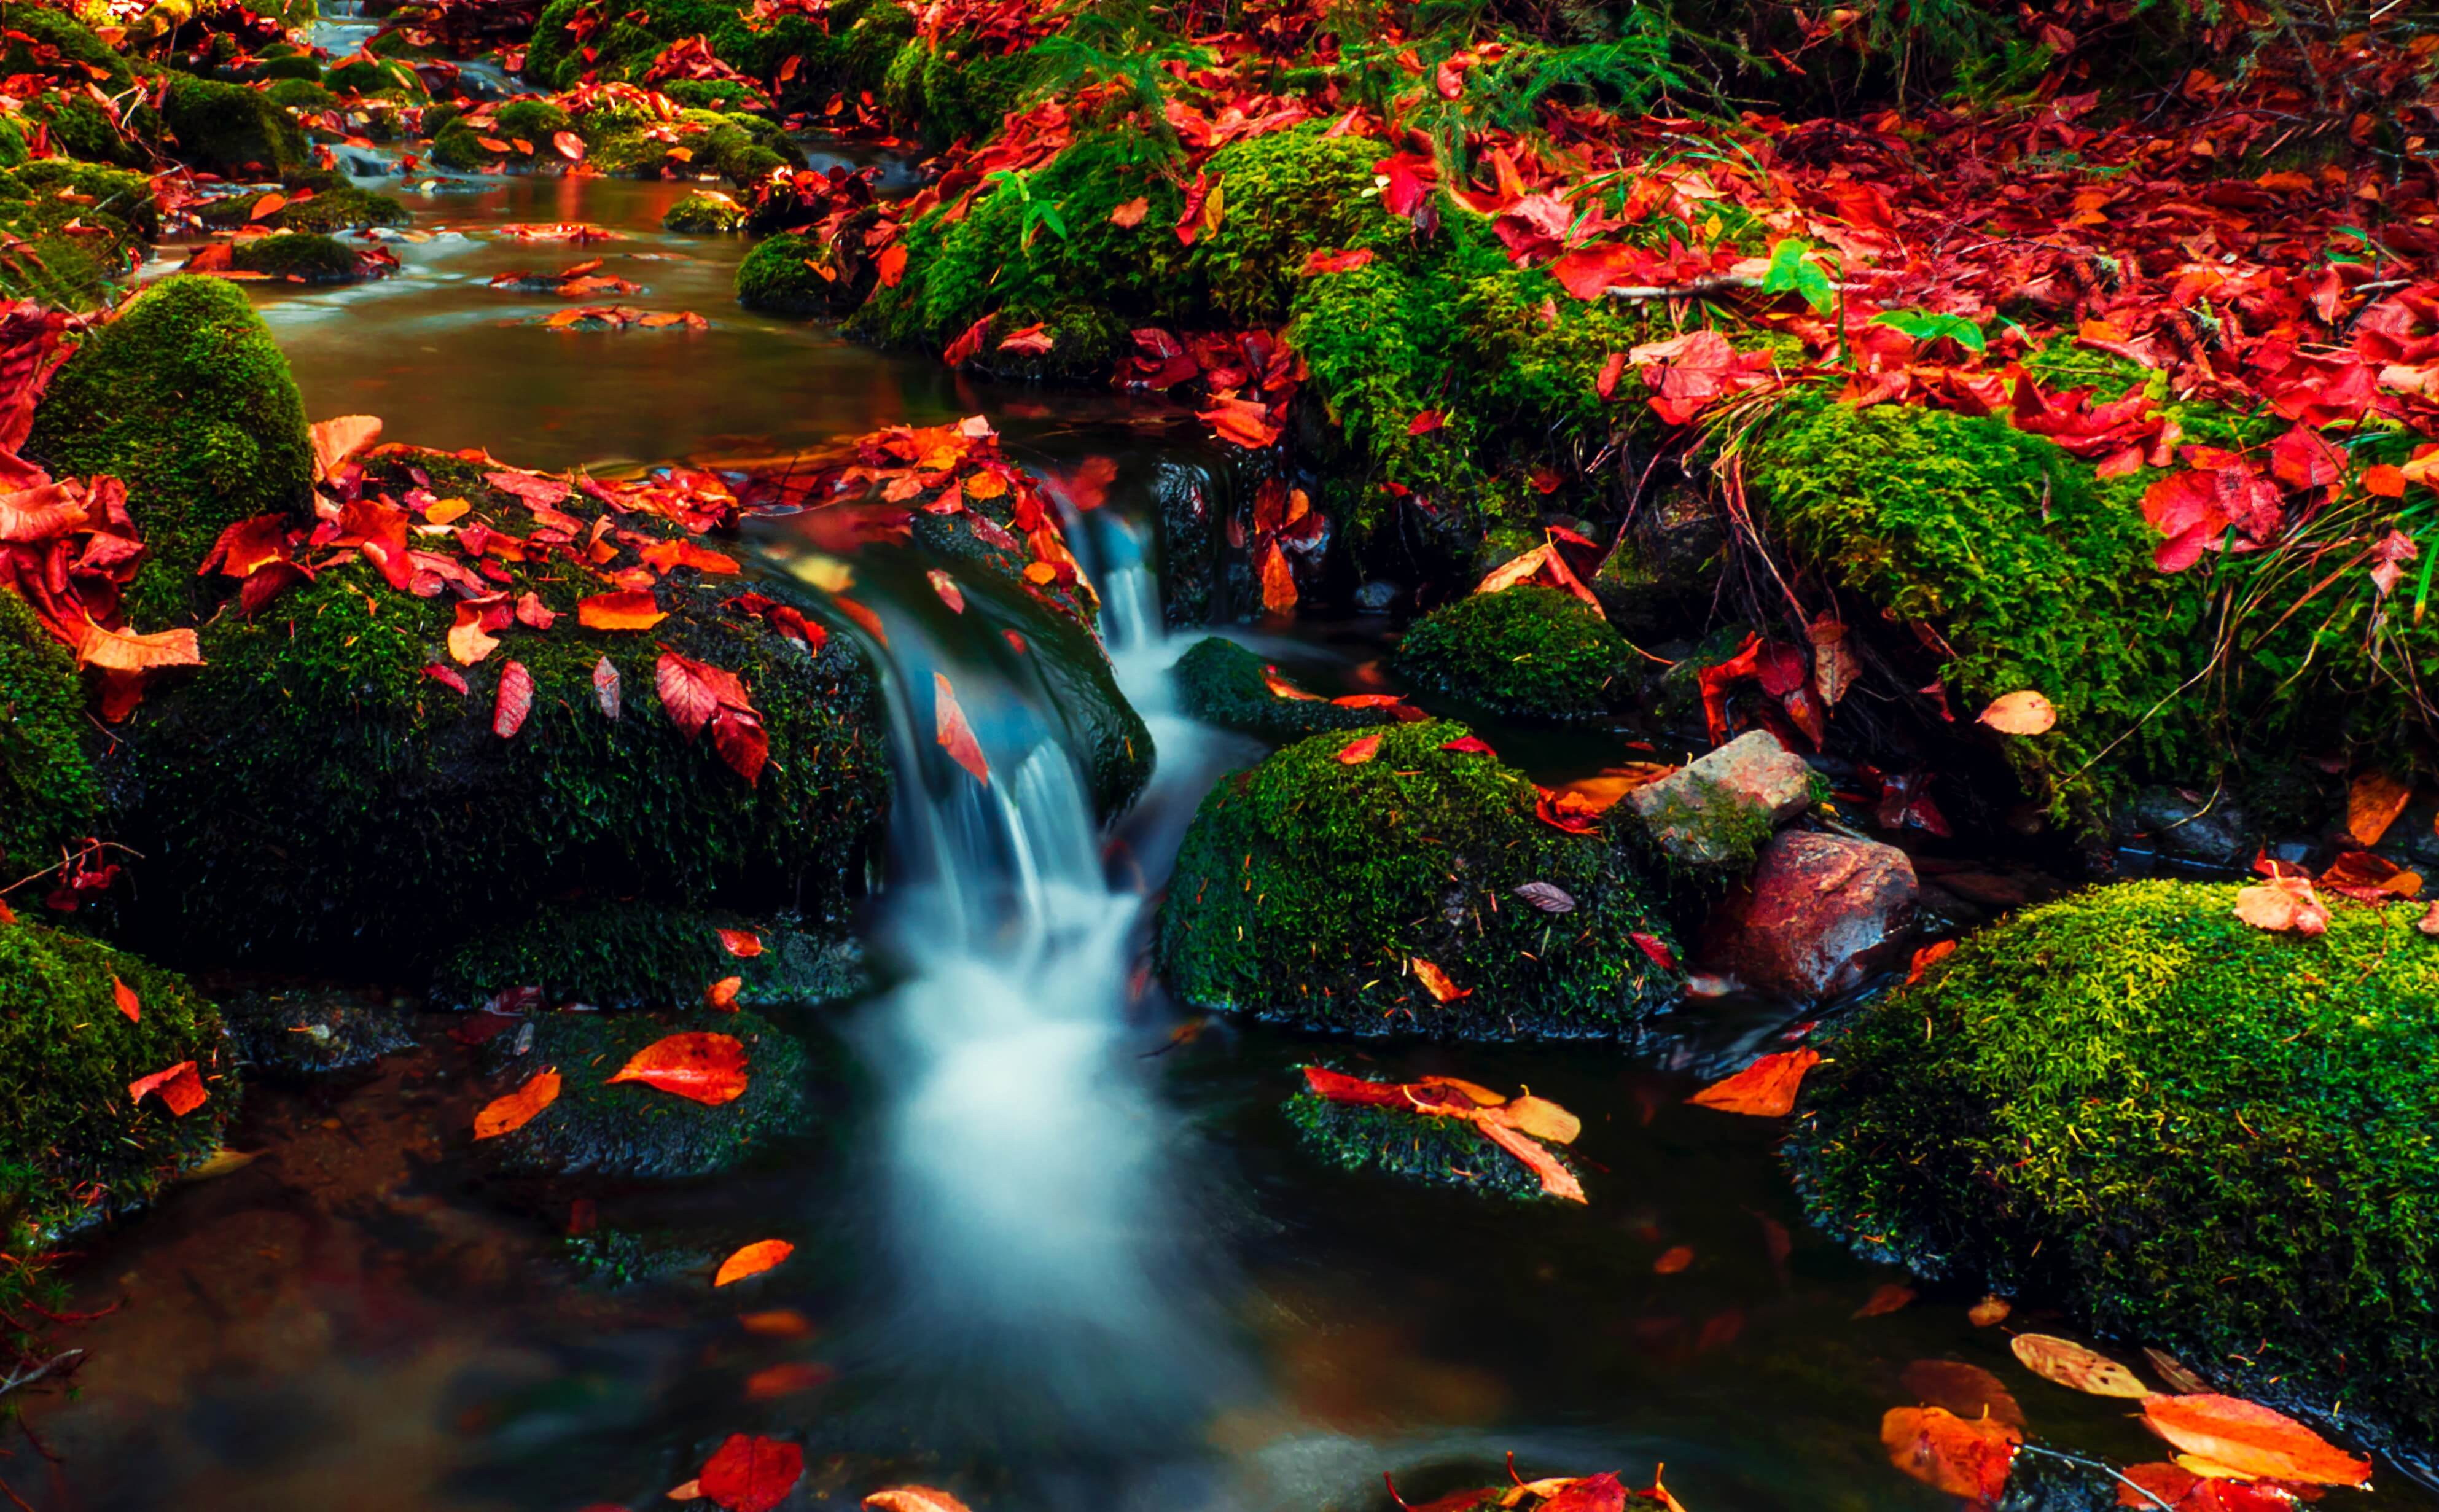 moving water in stream with mossy rocks and red leaves